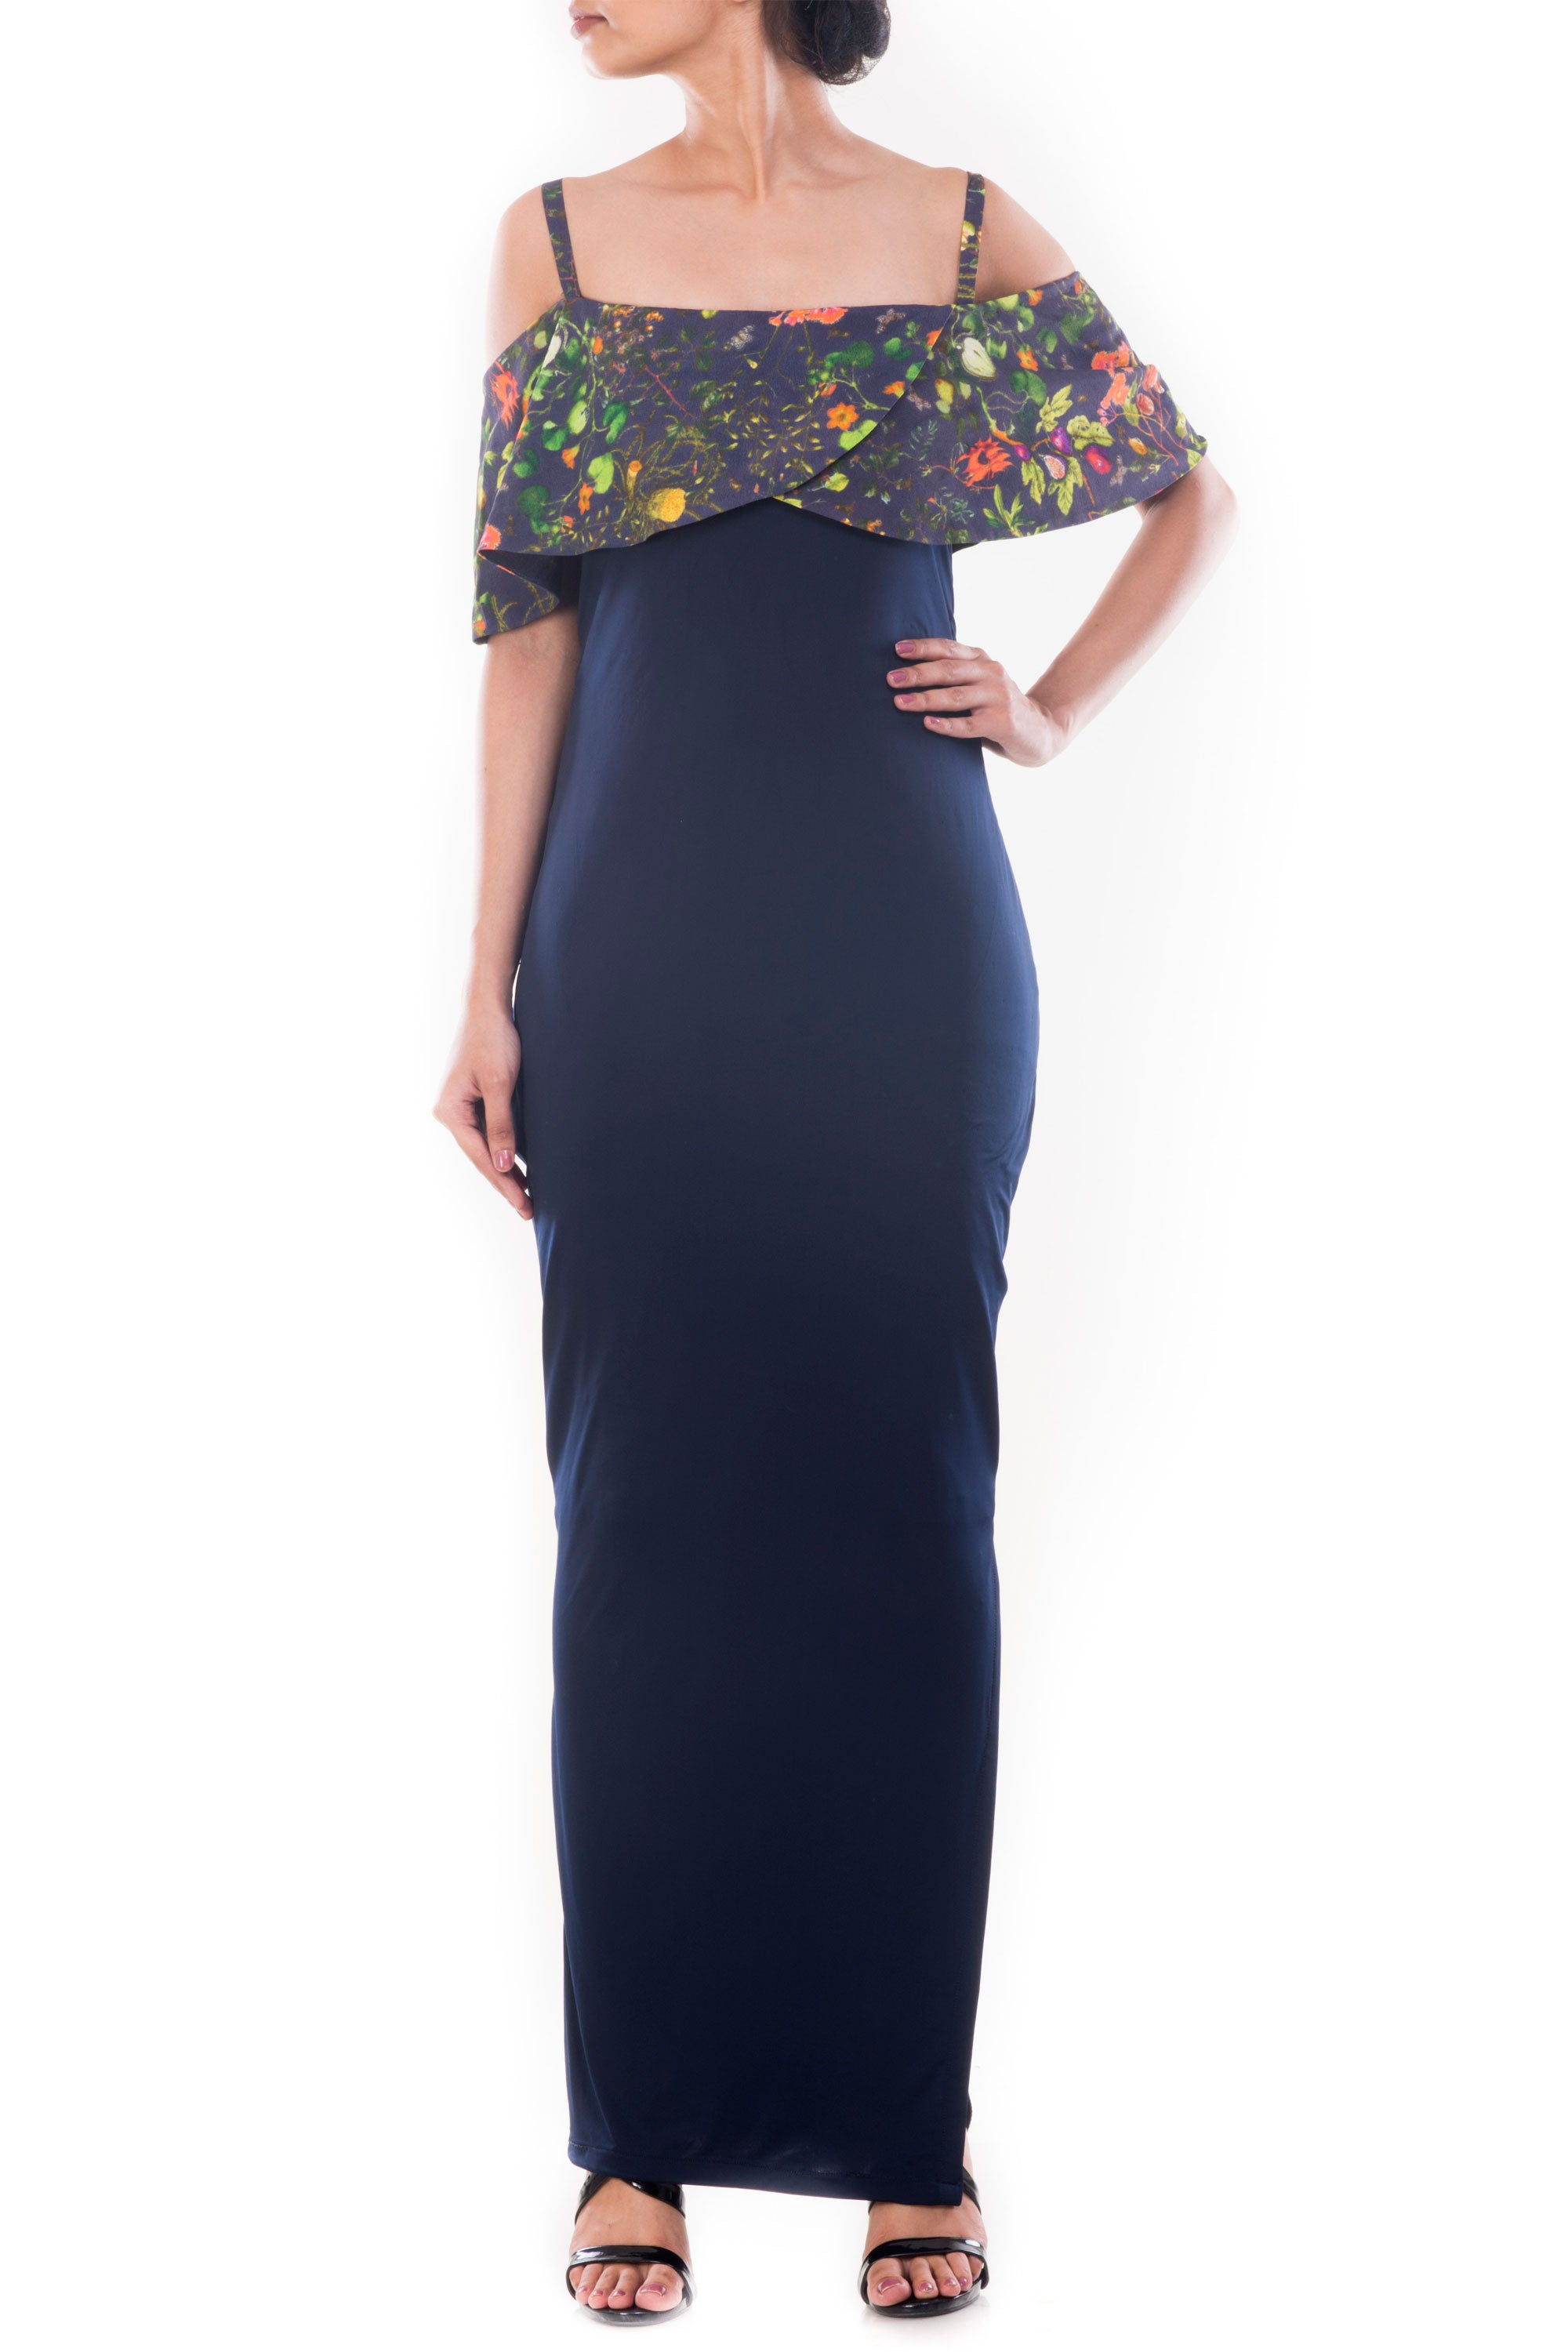 Midnight Blue Garden Print Off Shoulder Dress Front